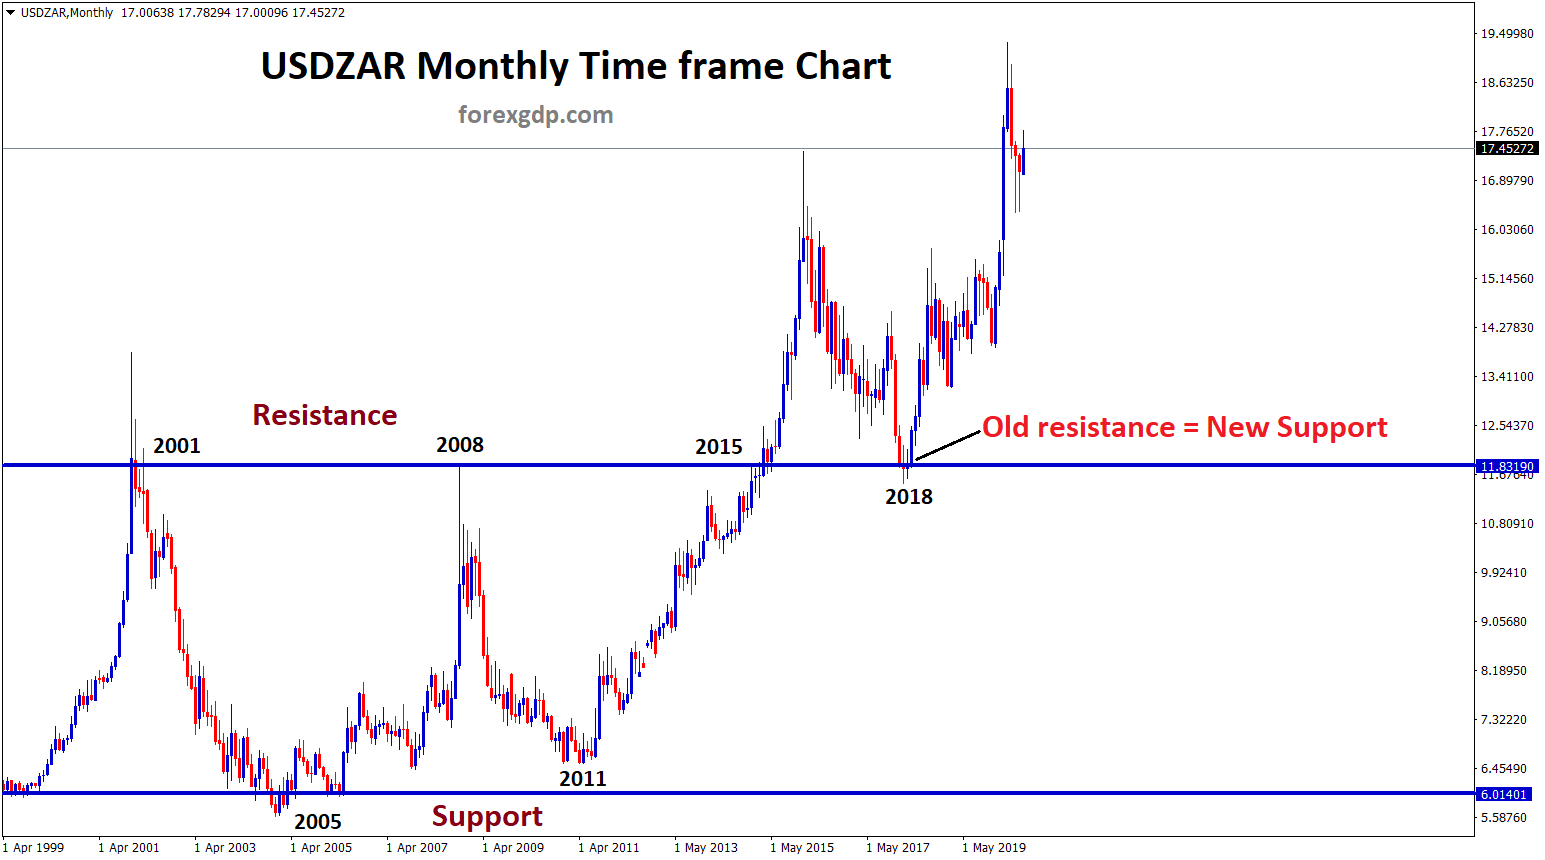 Support and Resistance analysis of USDZAR